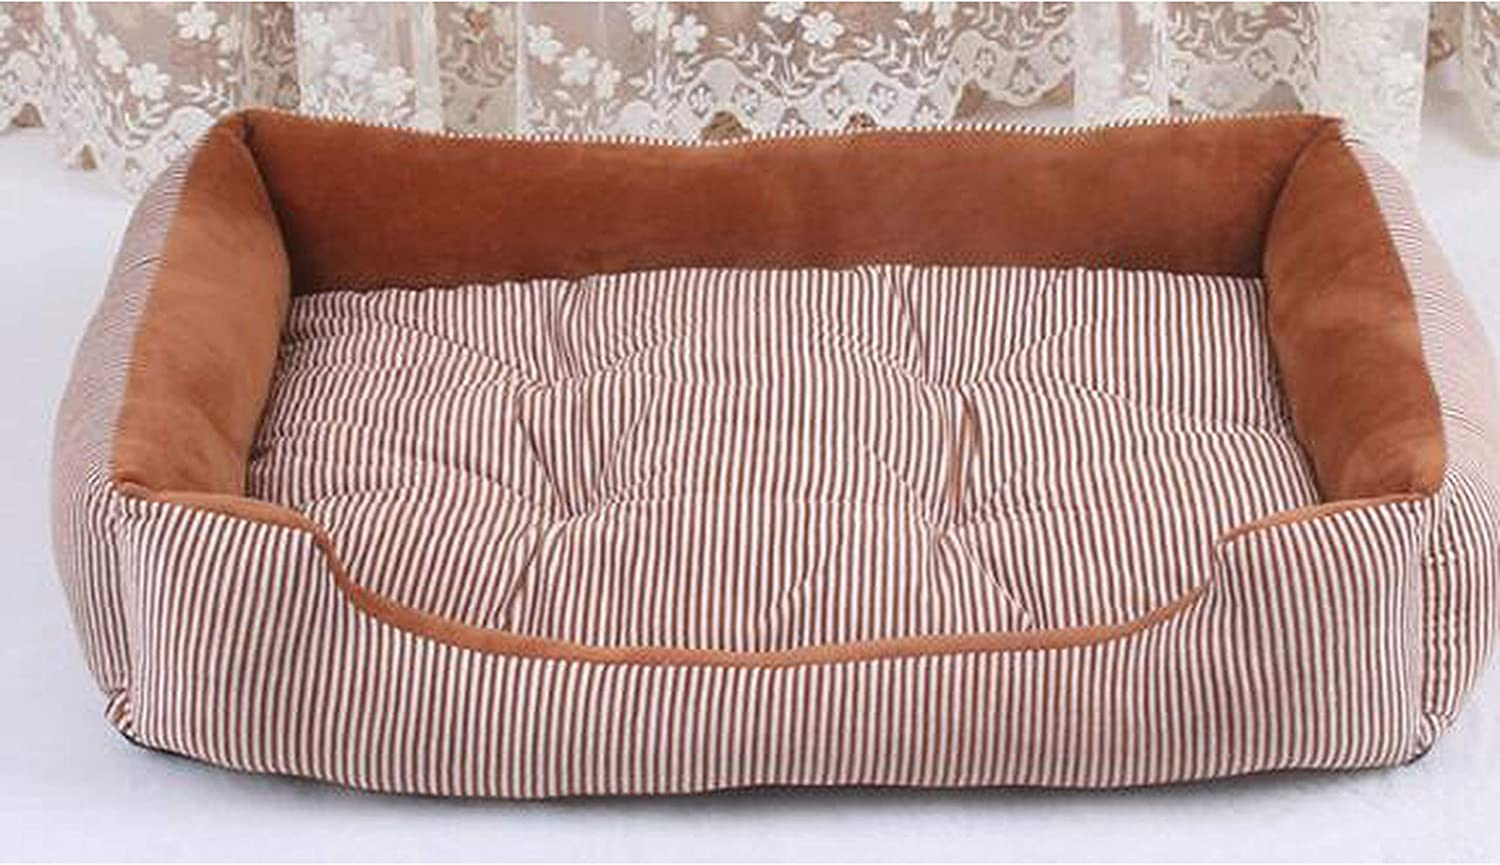 Extra Large Pet Bed Sofas for Cat Dogs Husky Bulldog Removable Sleeping Cushion Mattress Take Out Small Large Dog House,Light Brown,S 50X38X15Cm